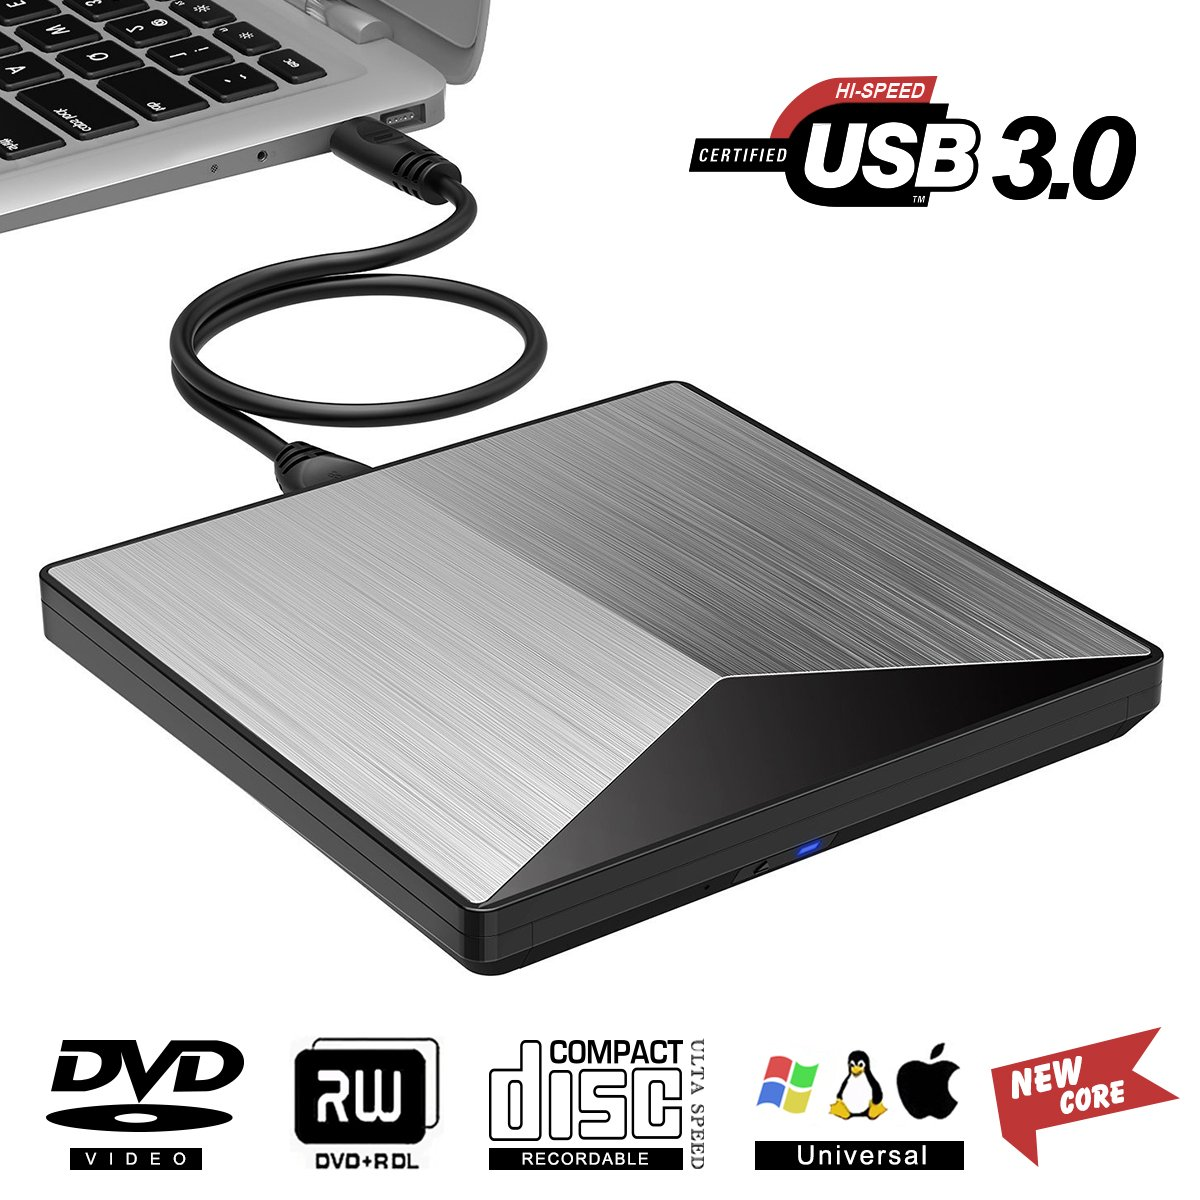 Cocopa Ghagsj External DVD Drive Kilineo USB 3.0 CD Burner Reader 100% New Core External Optical Drives Black